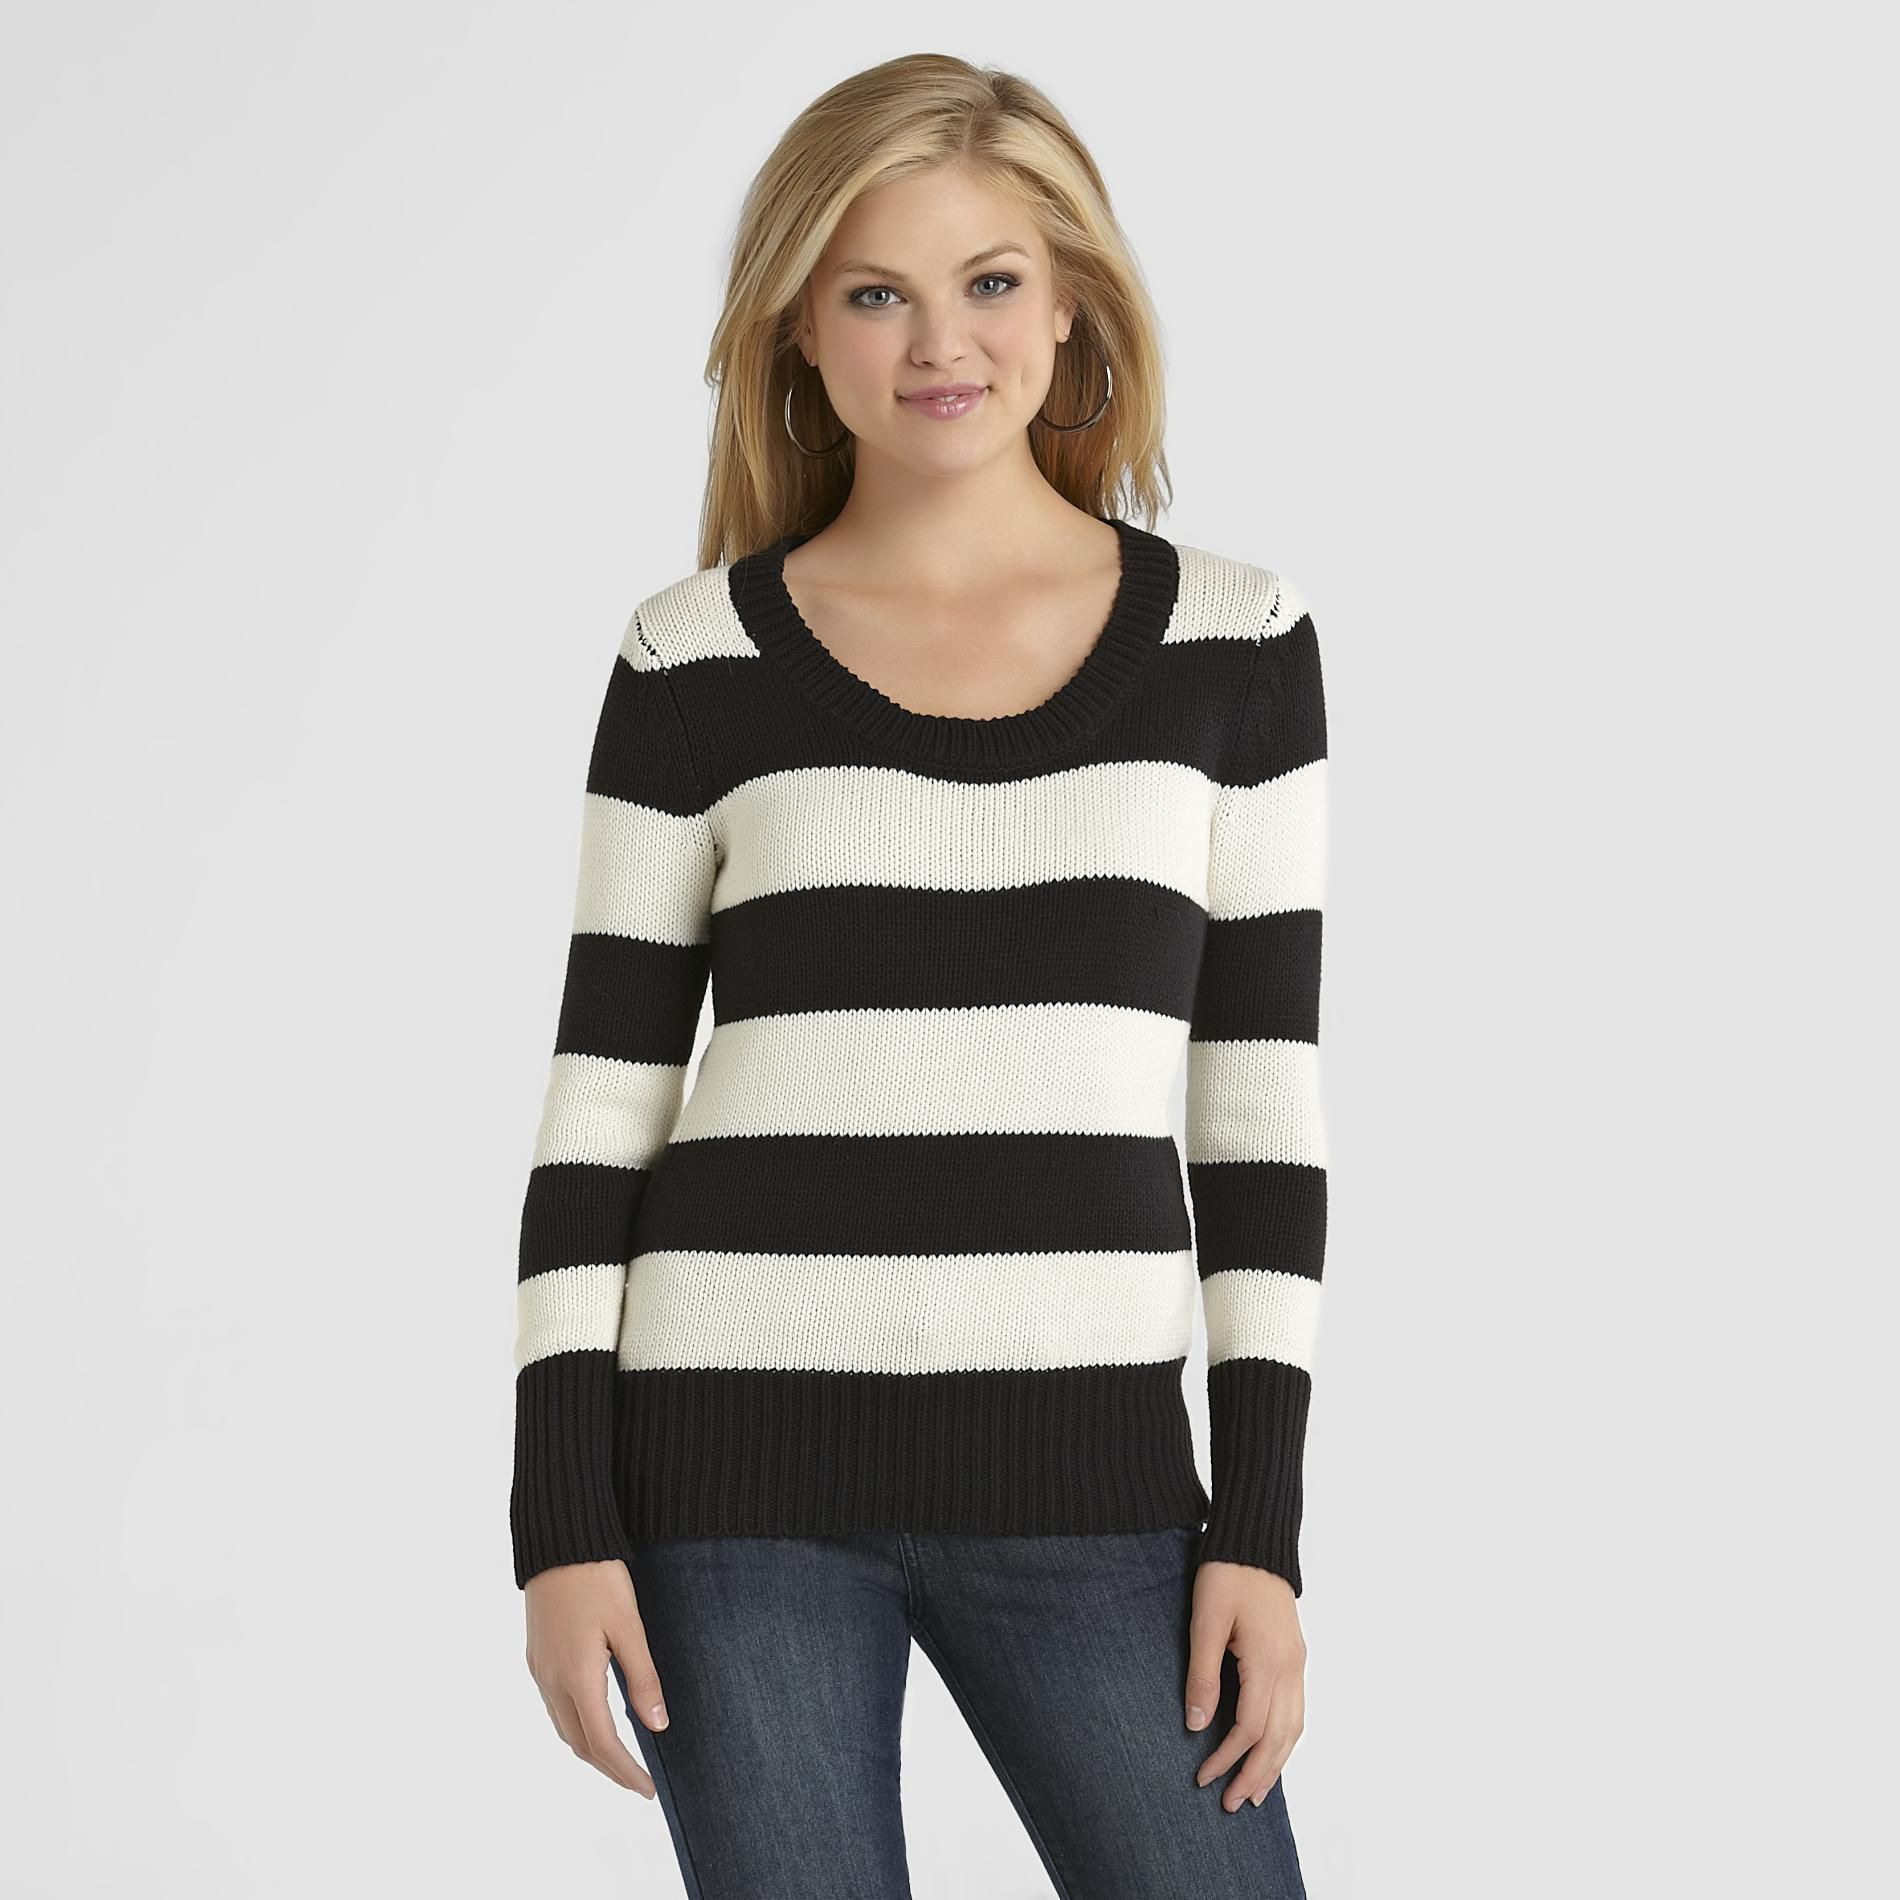 Route 66 Women's Striped Sweater at Kmart.com